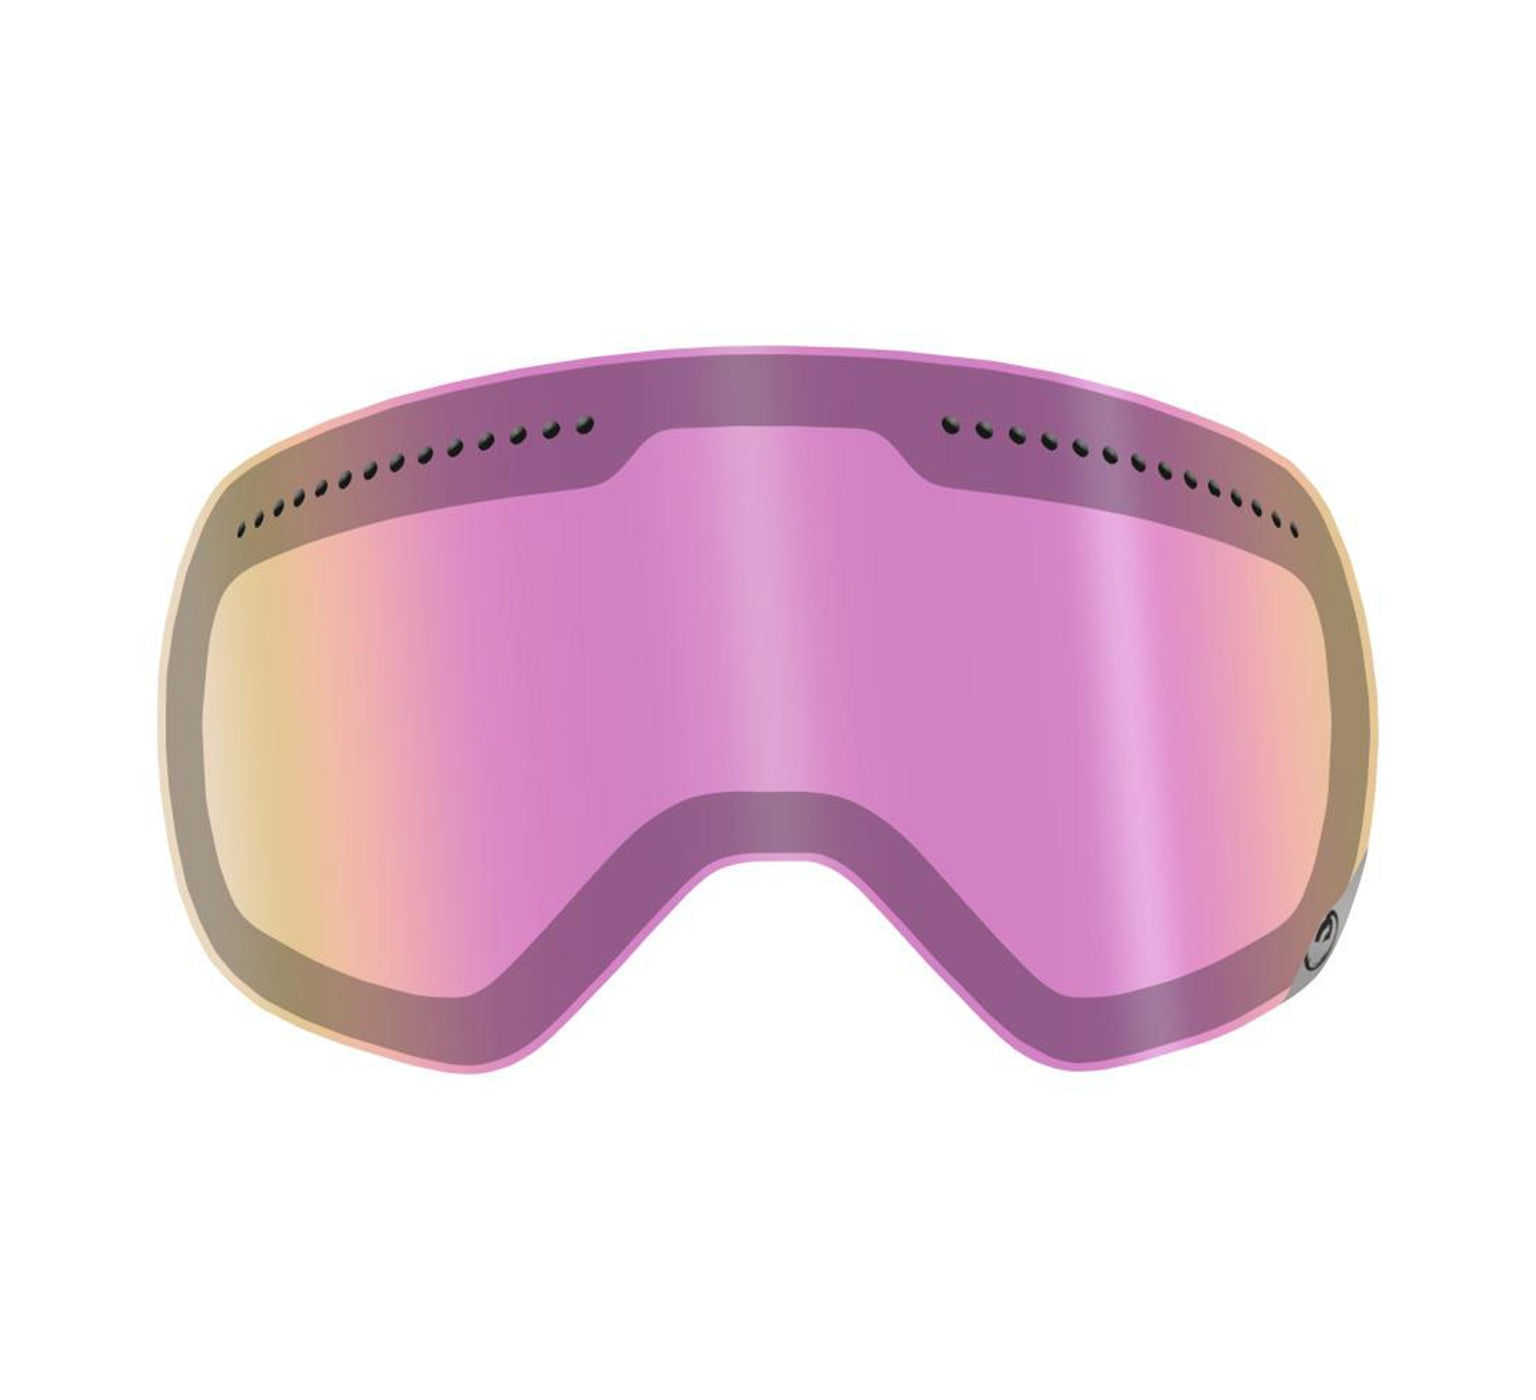 APX Replacement Lens - Pink Ionized (Classic)